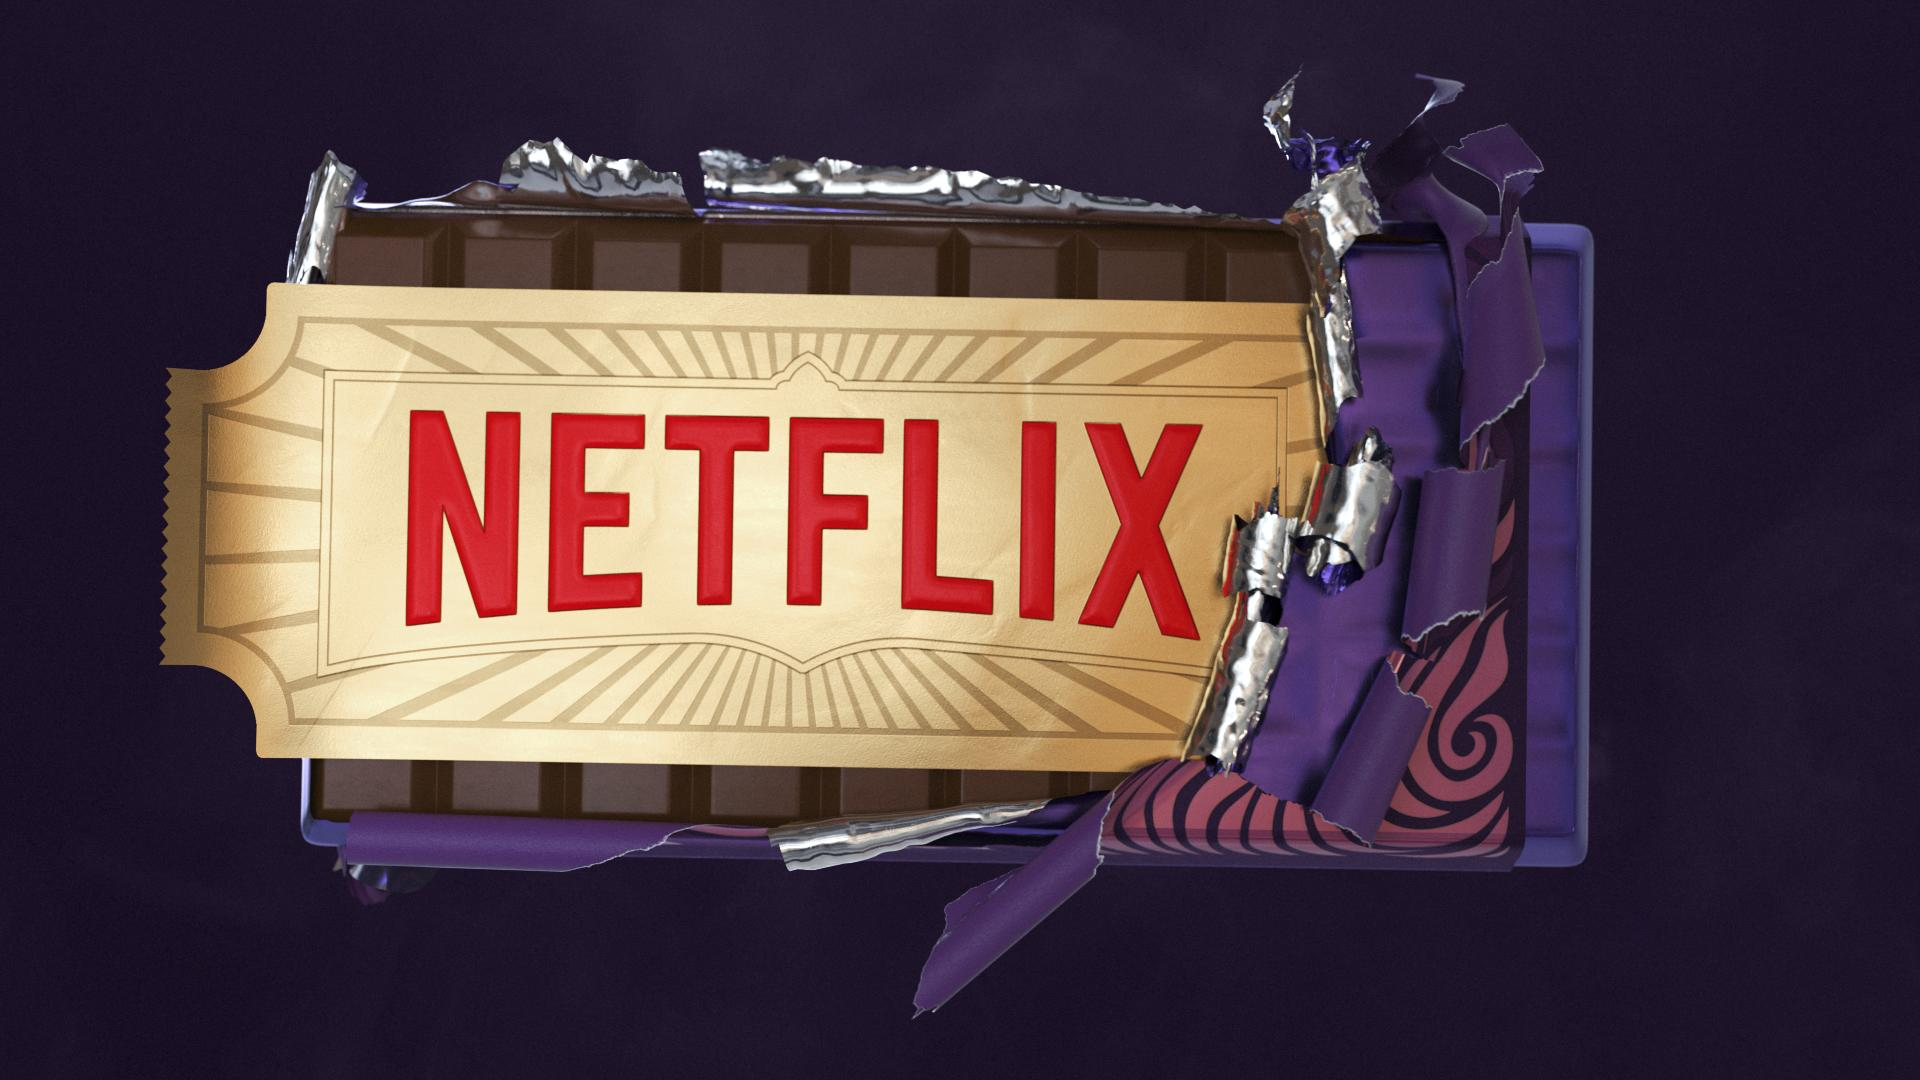 Netflix to Create Original Animated Event Series Based on Roald Dahl's Most Beloved Stories